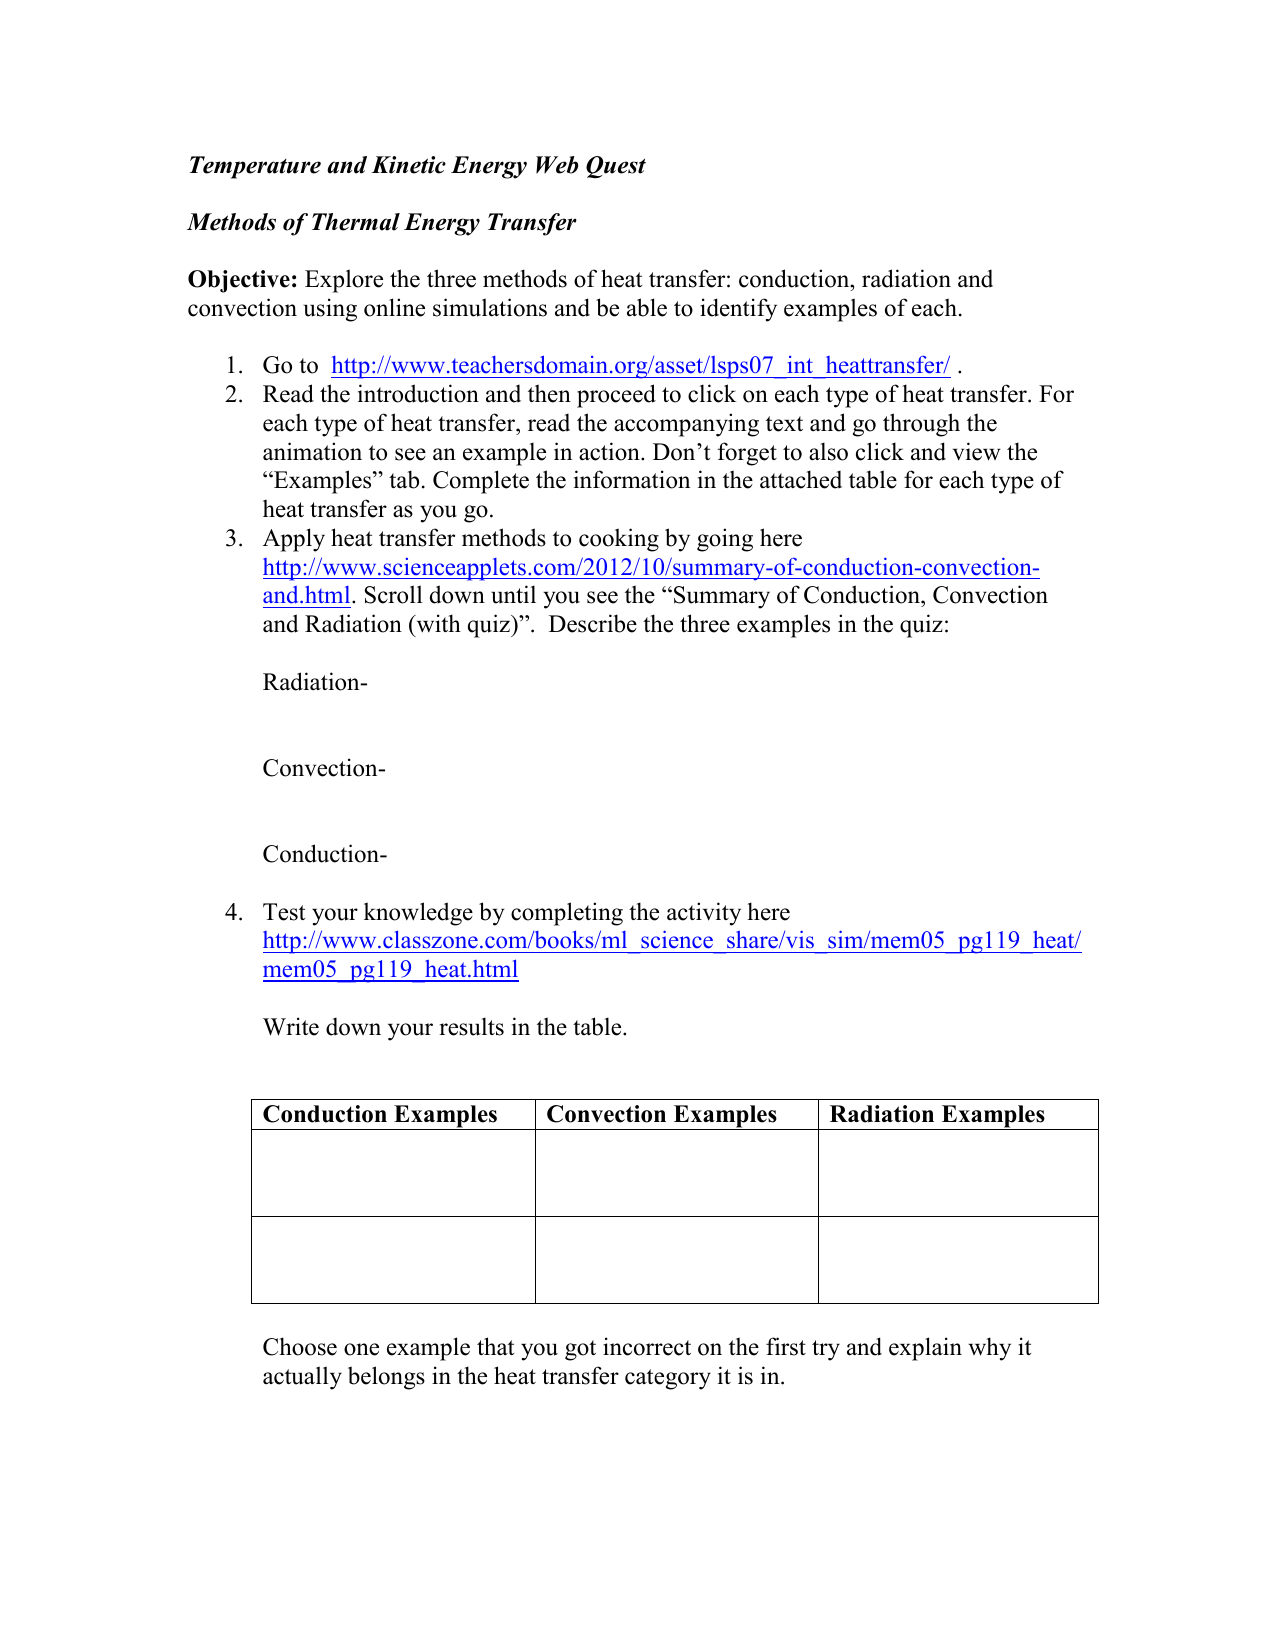 Temperature and Kinetic Energy Web Quest Methods of Thermal